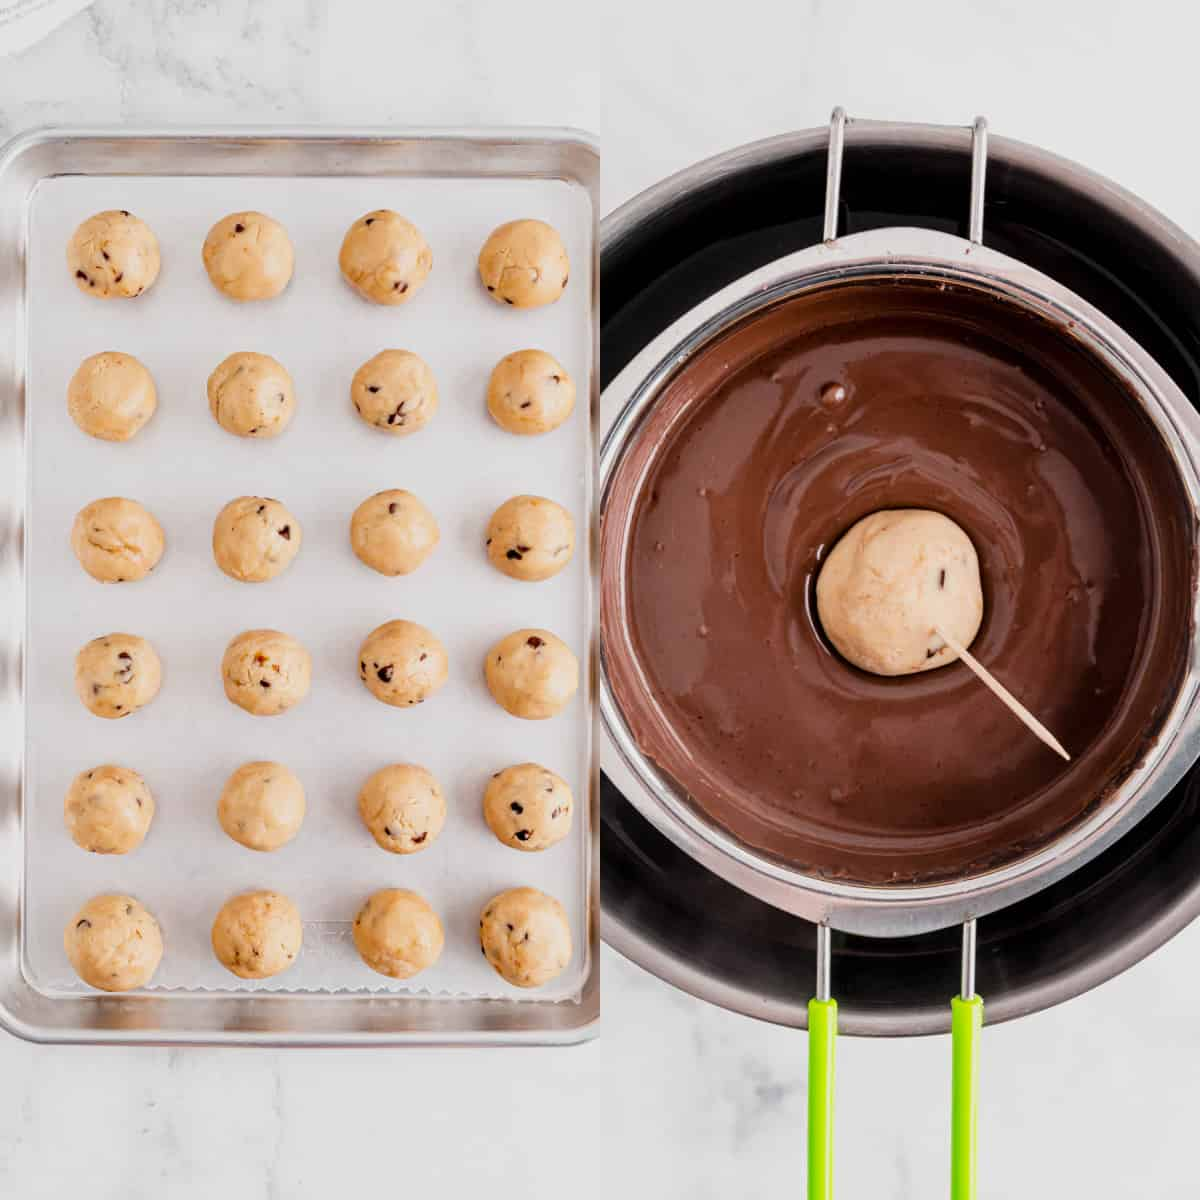 truffles rolled into balls on a baking sheet and then dipped into chocolate